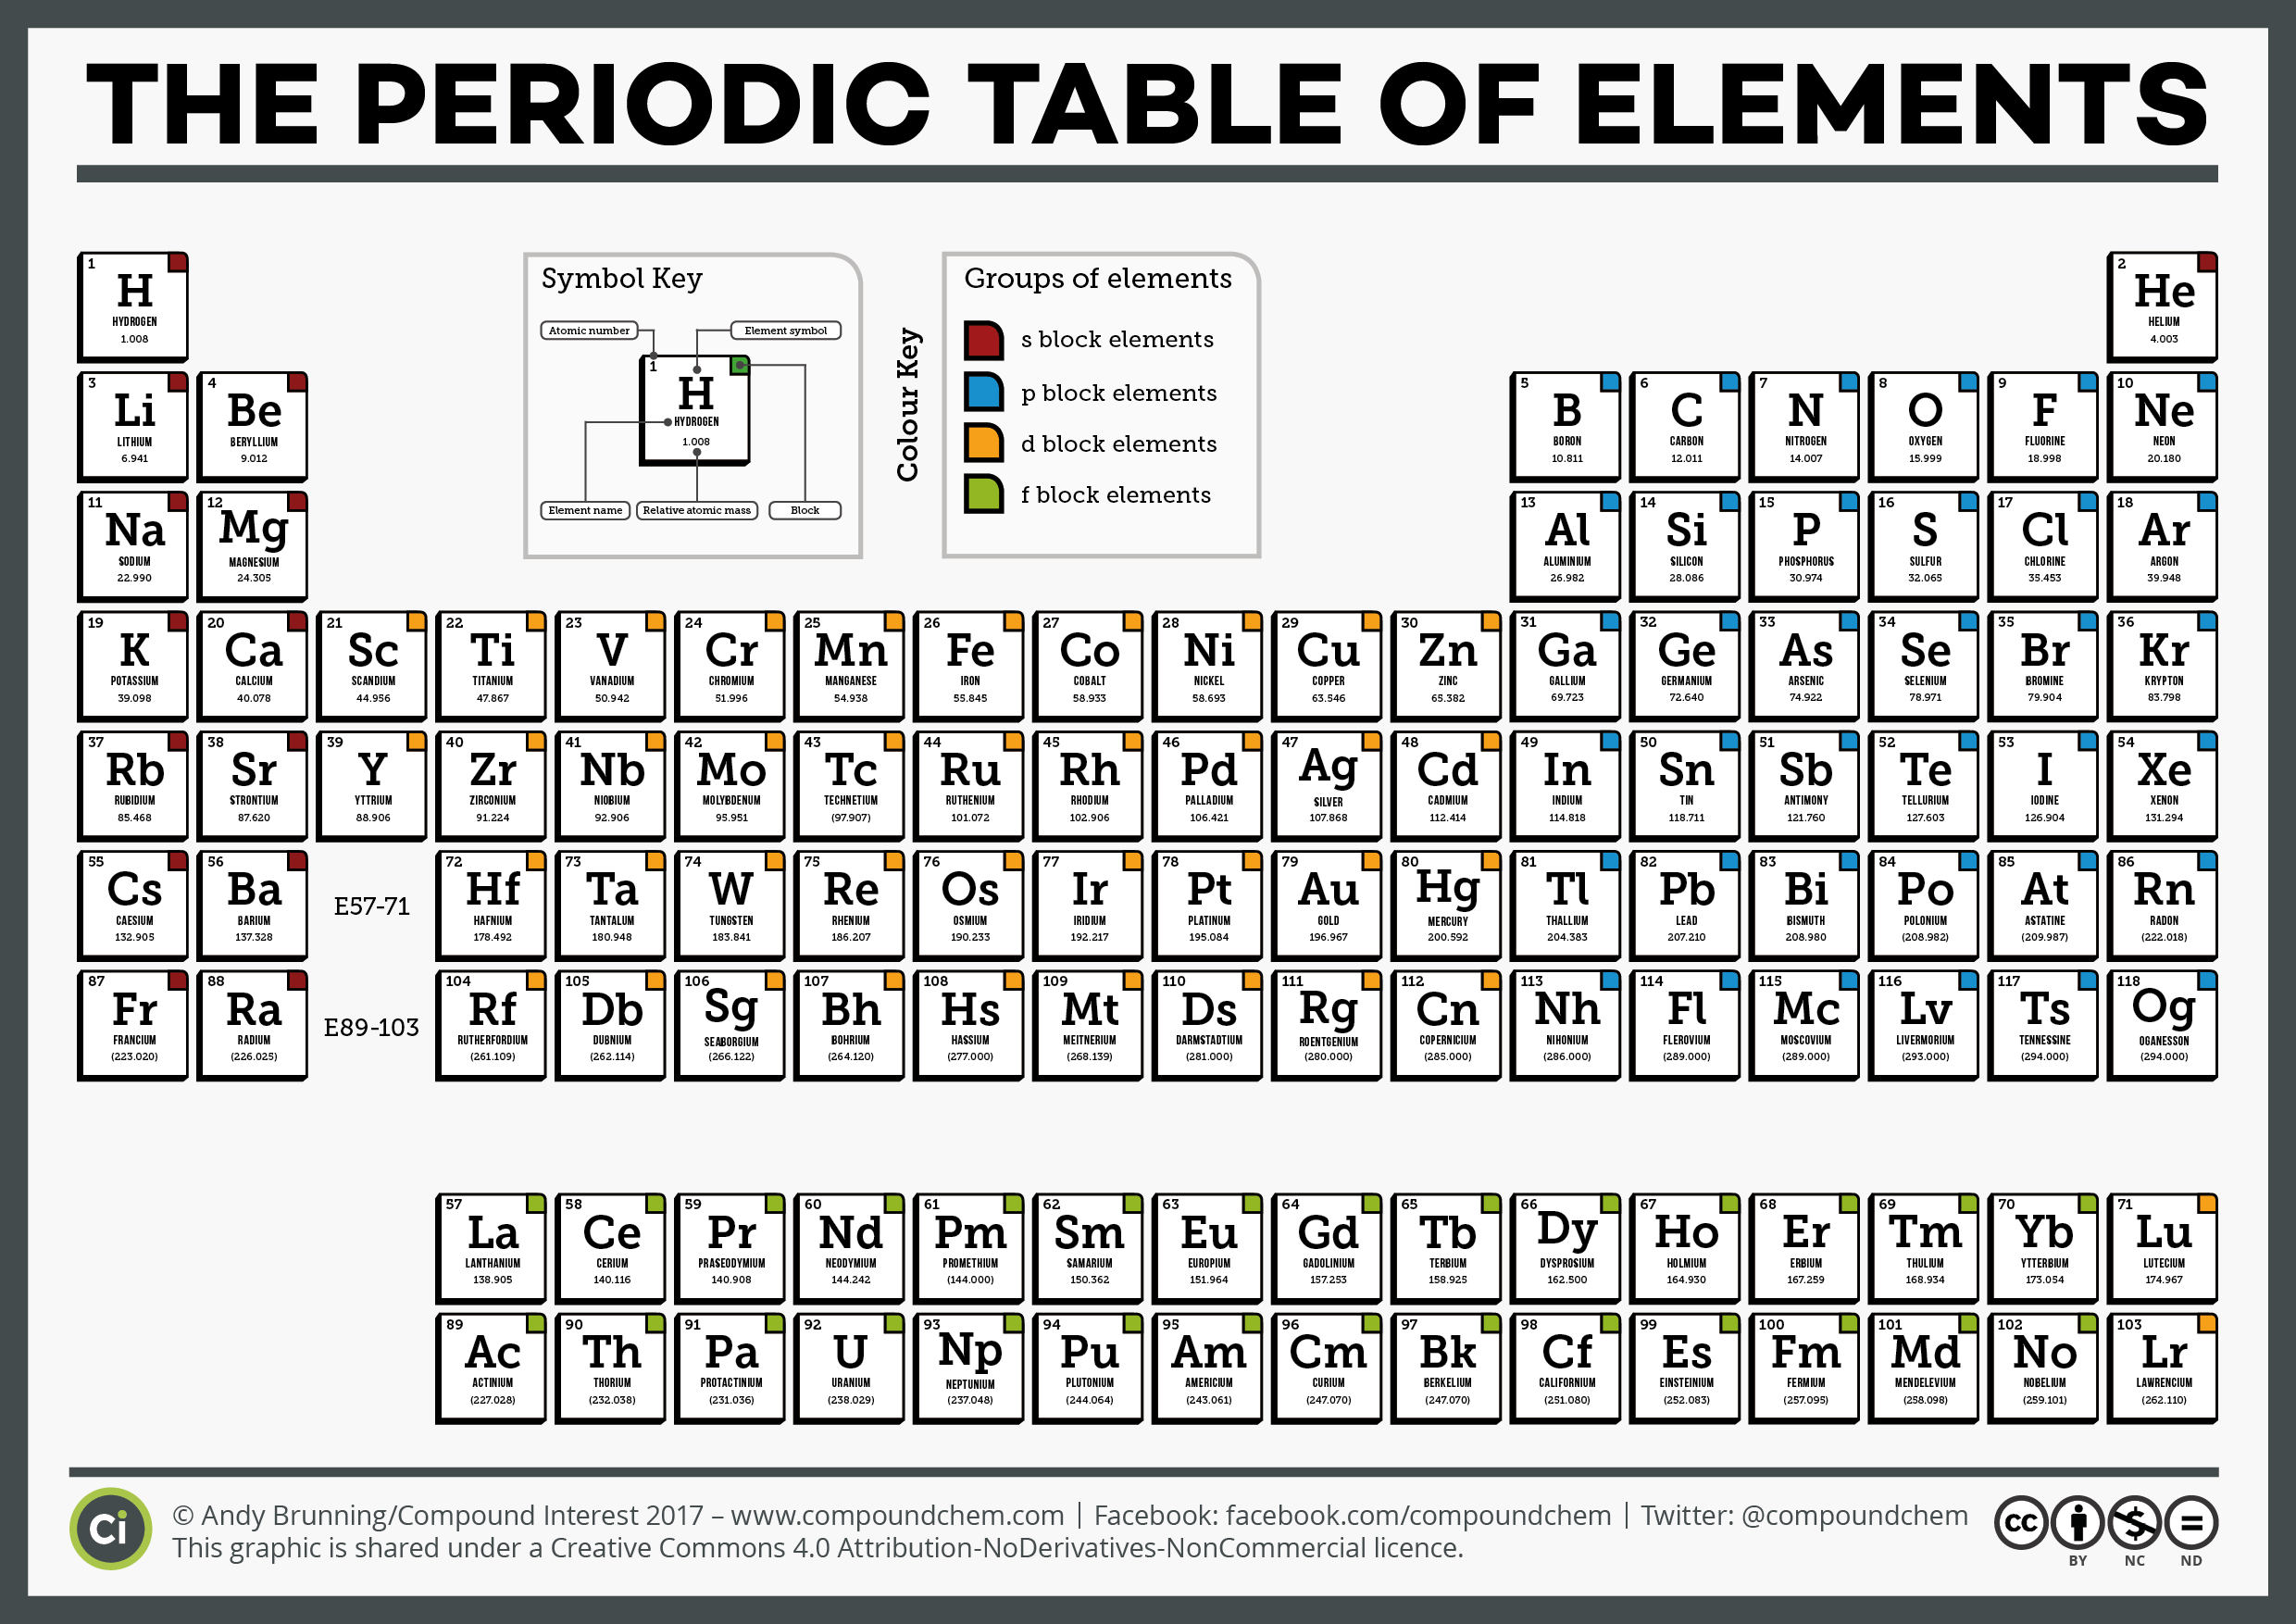 Periodic table of elements 2017 pdf brokeasshome periodic table of elements 2017 pdf brokeasshome com gamestrikefo Image collections